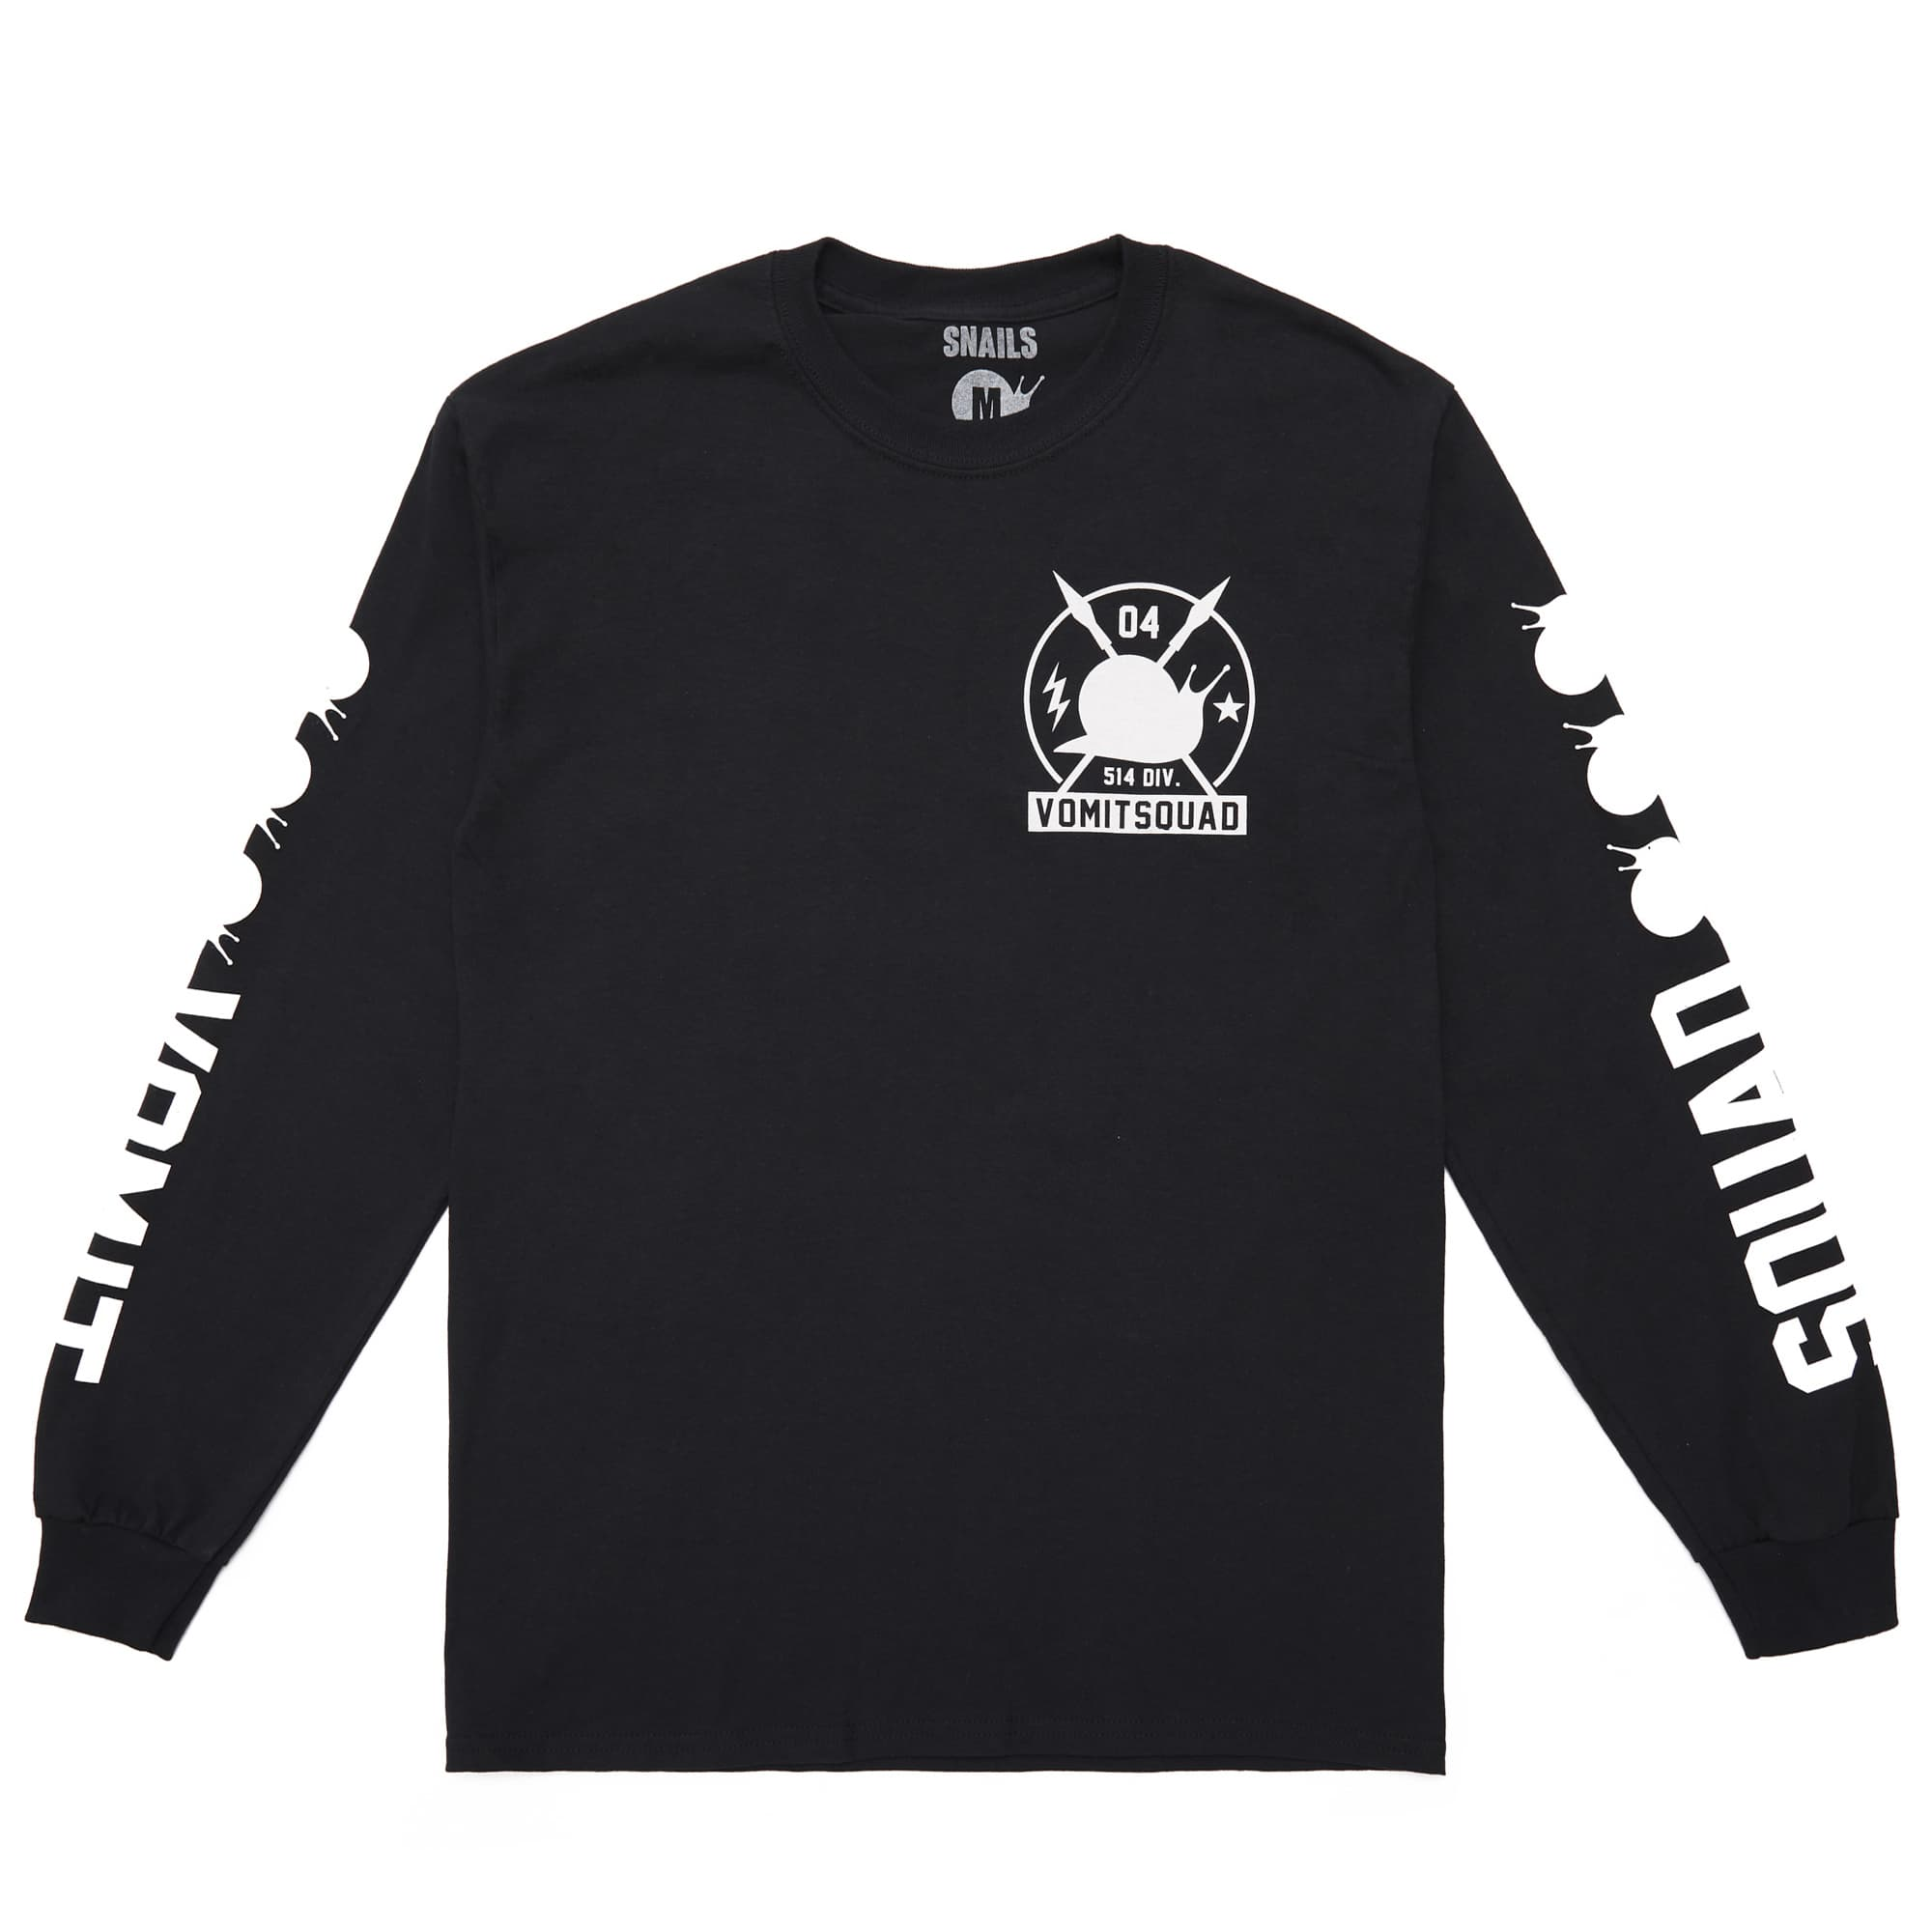 'F*ck Salt' Long Sleeve Tee